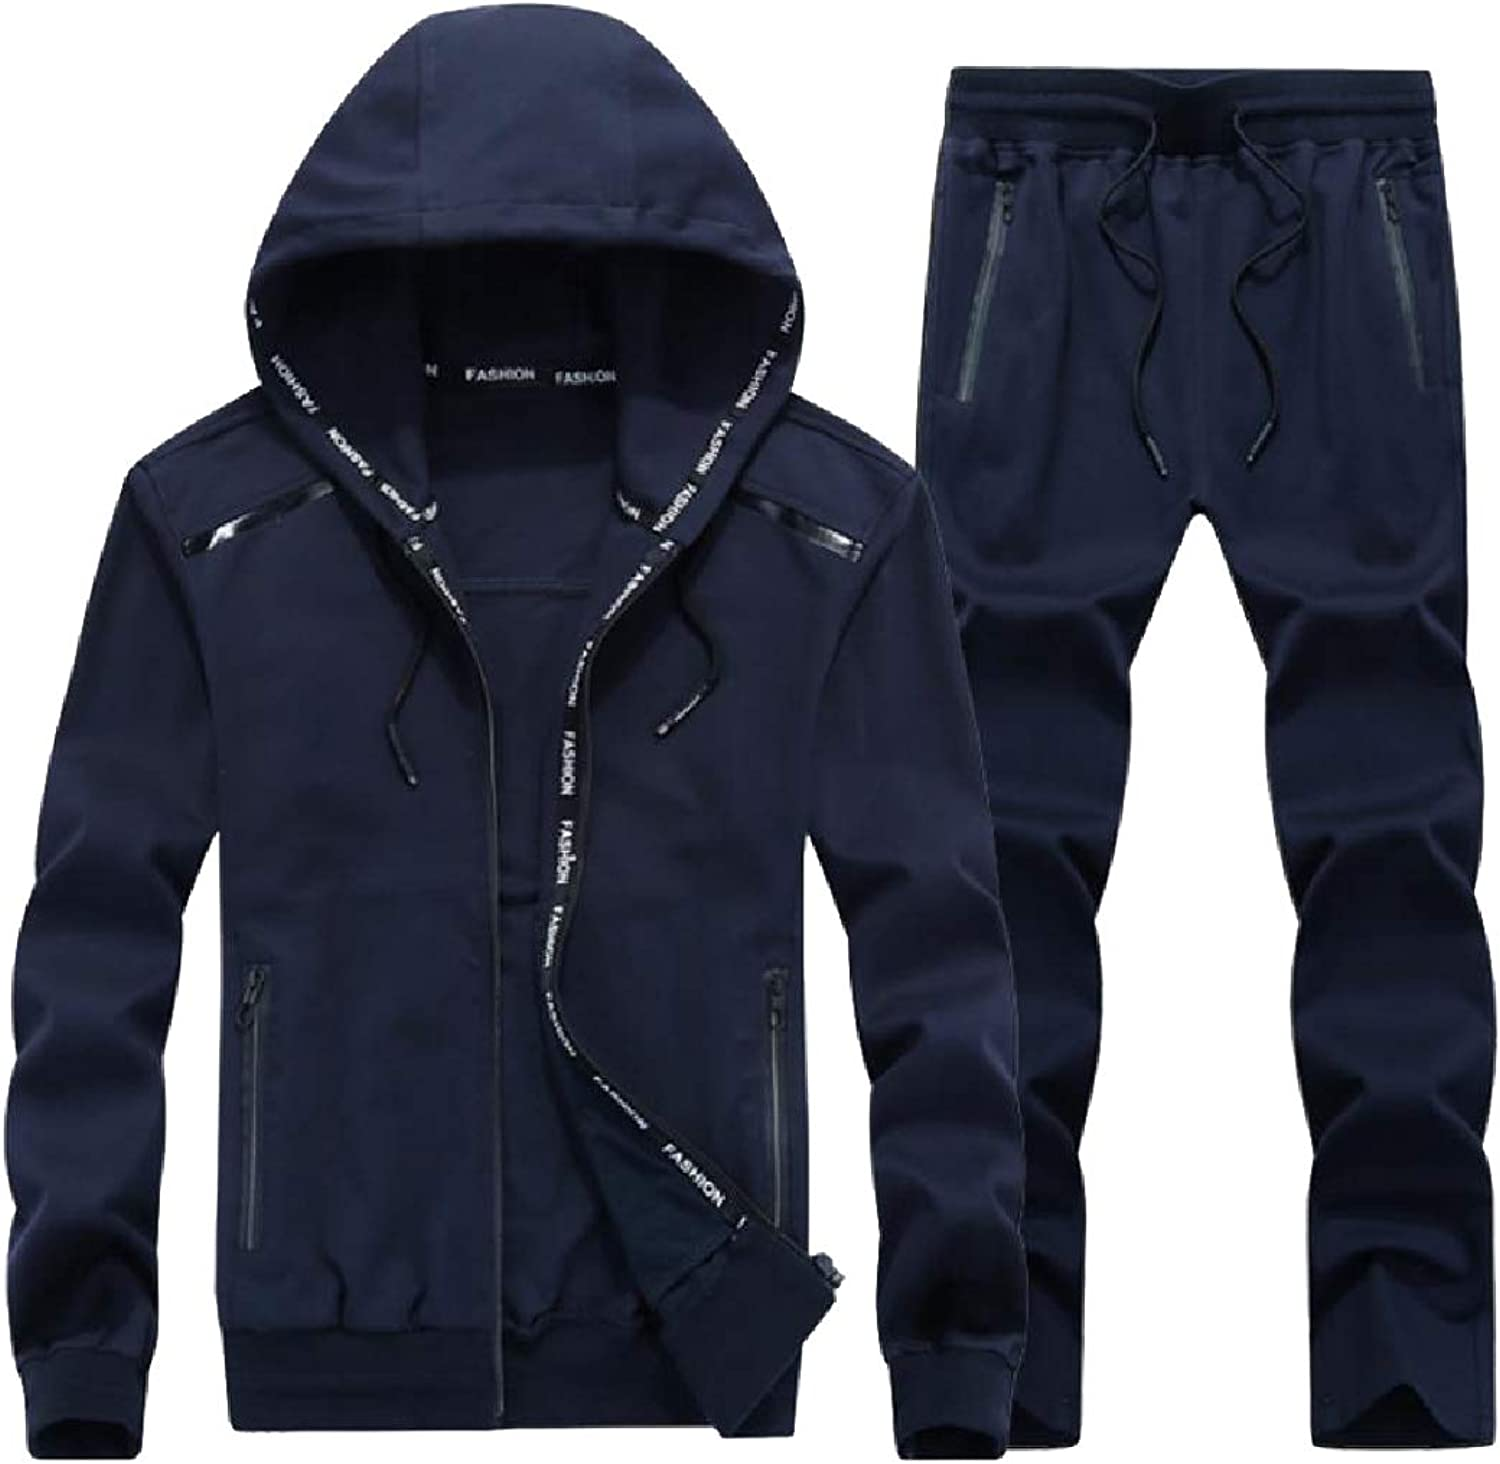 Howme-Men Drawstring Fall Winter Plus Size Big and Tall Sweatsuit